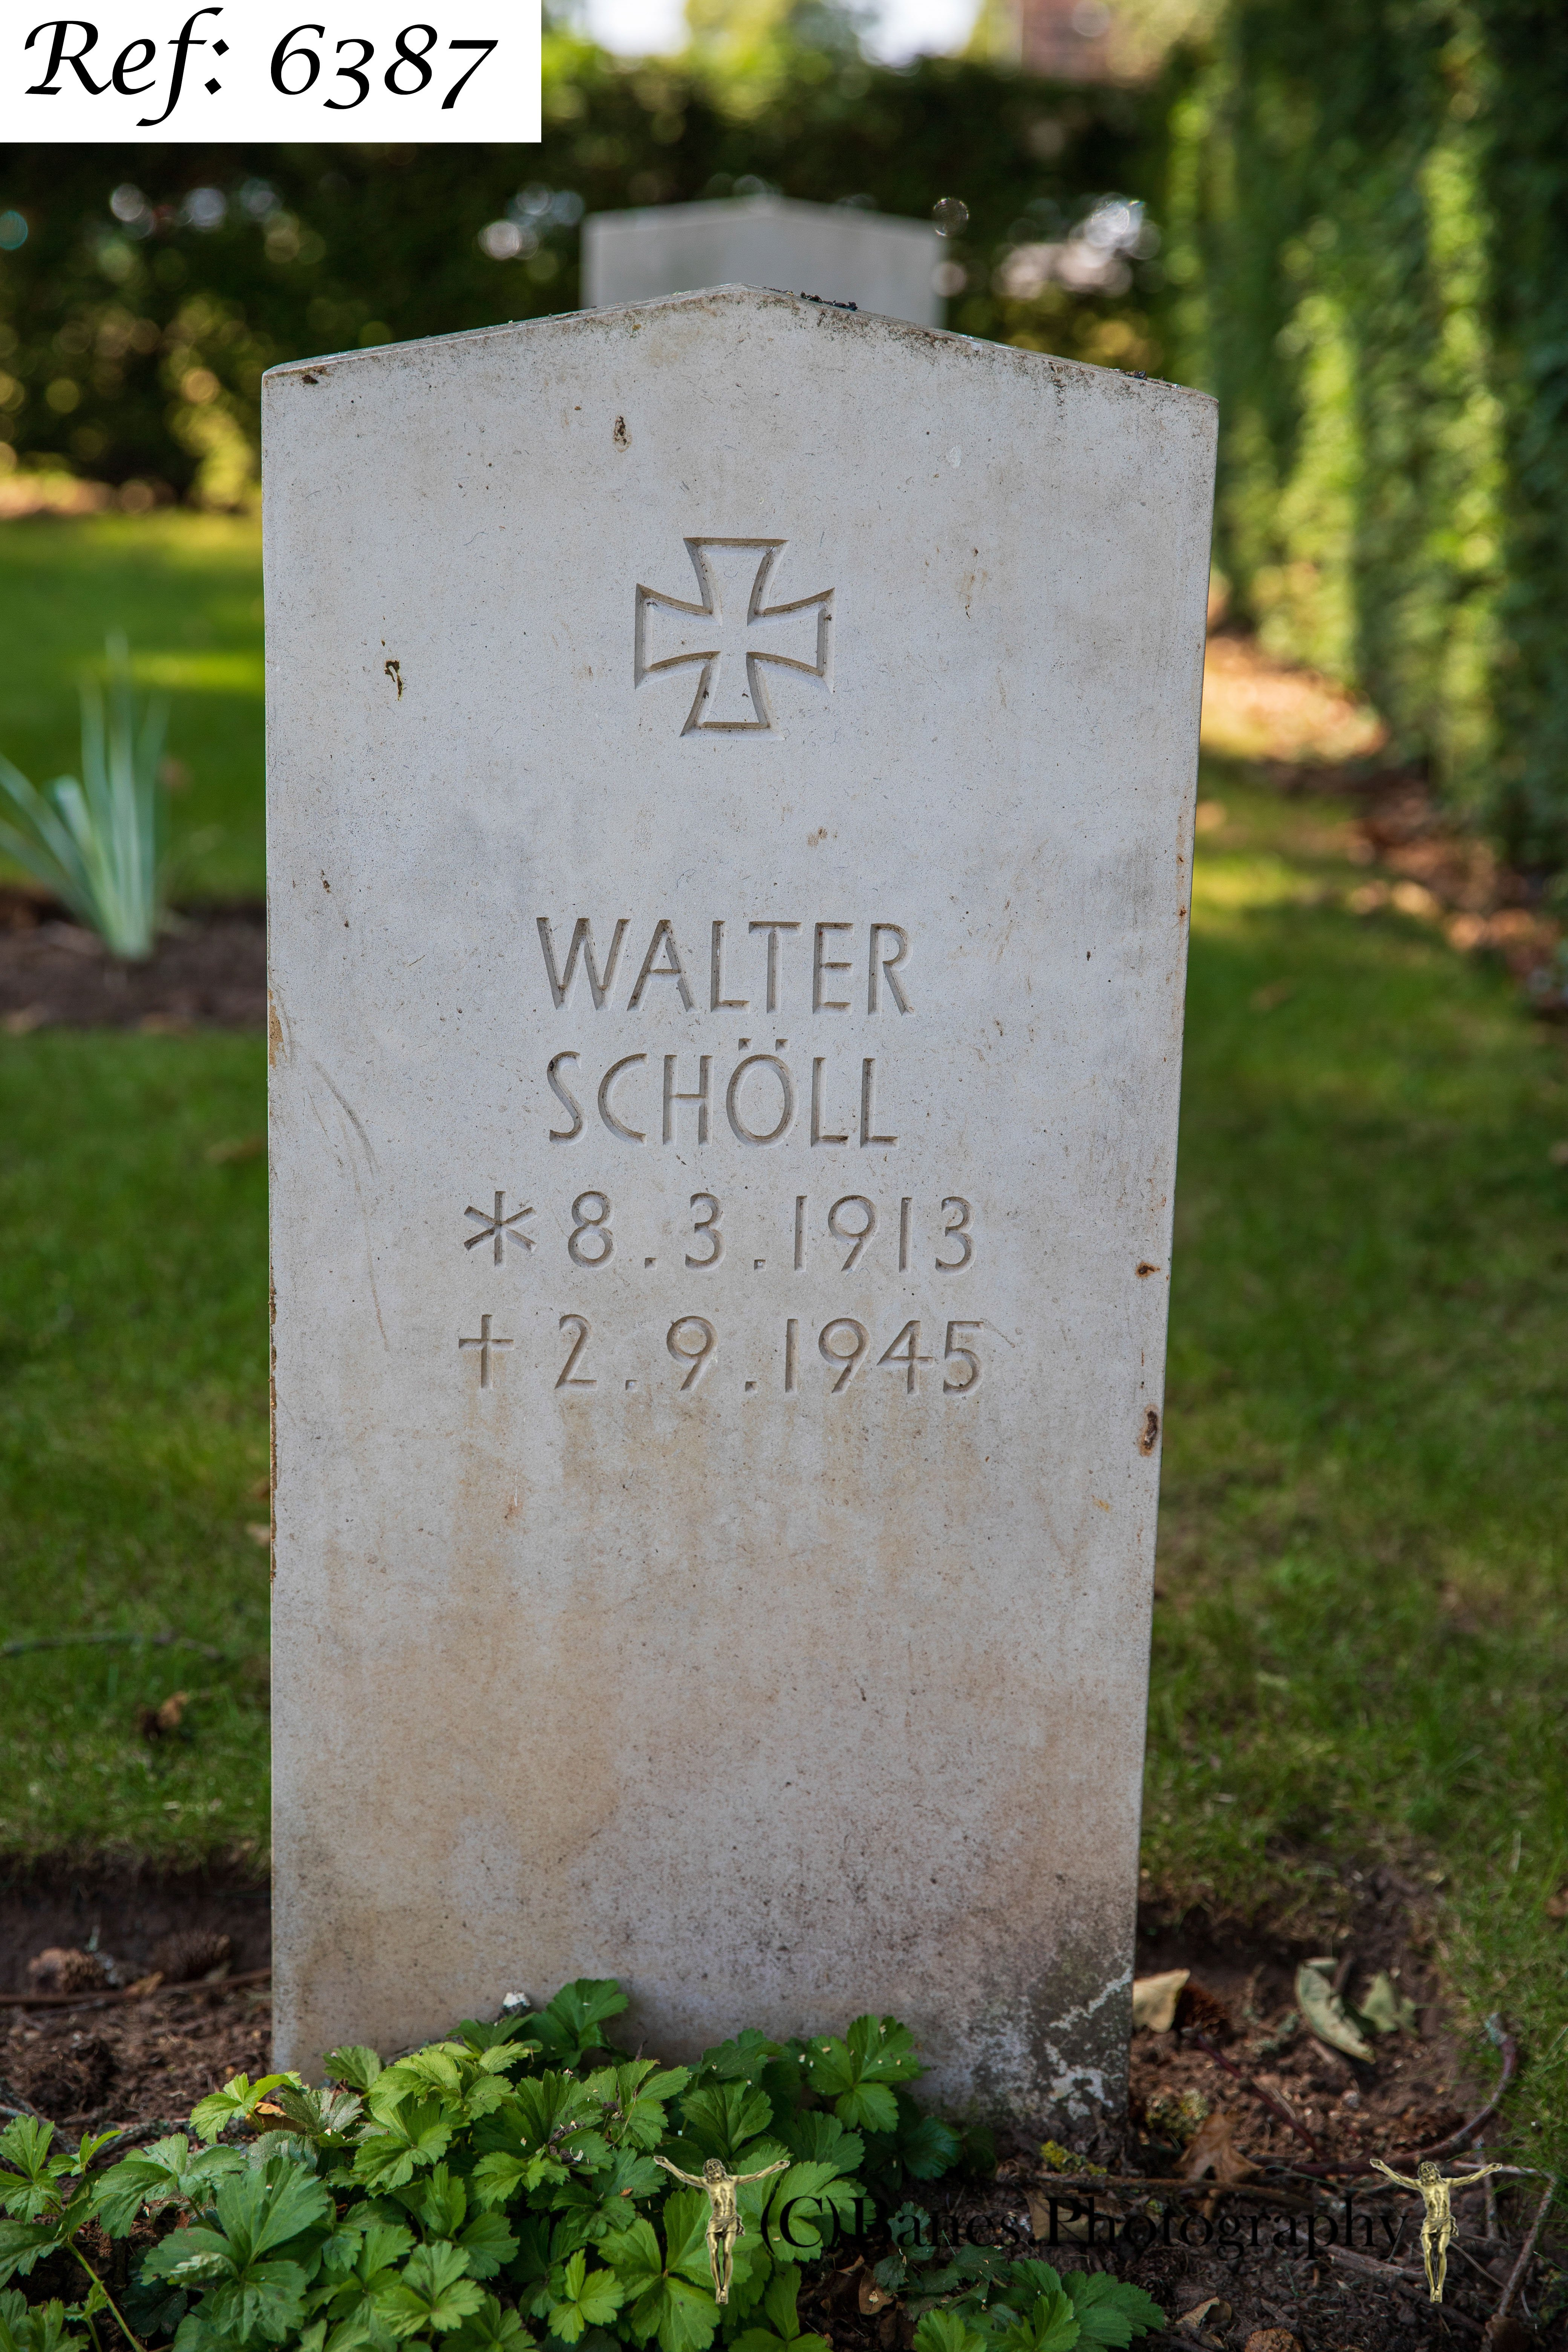 Schoell, Walter Emil, Beachley Military Cemetery (Web 2 WM) Ref 6387